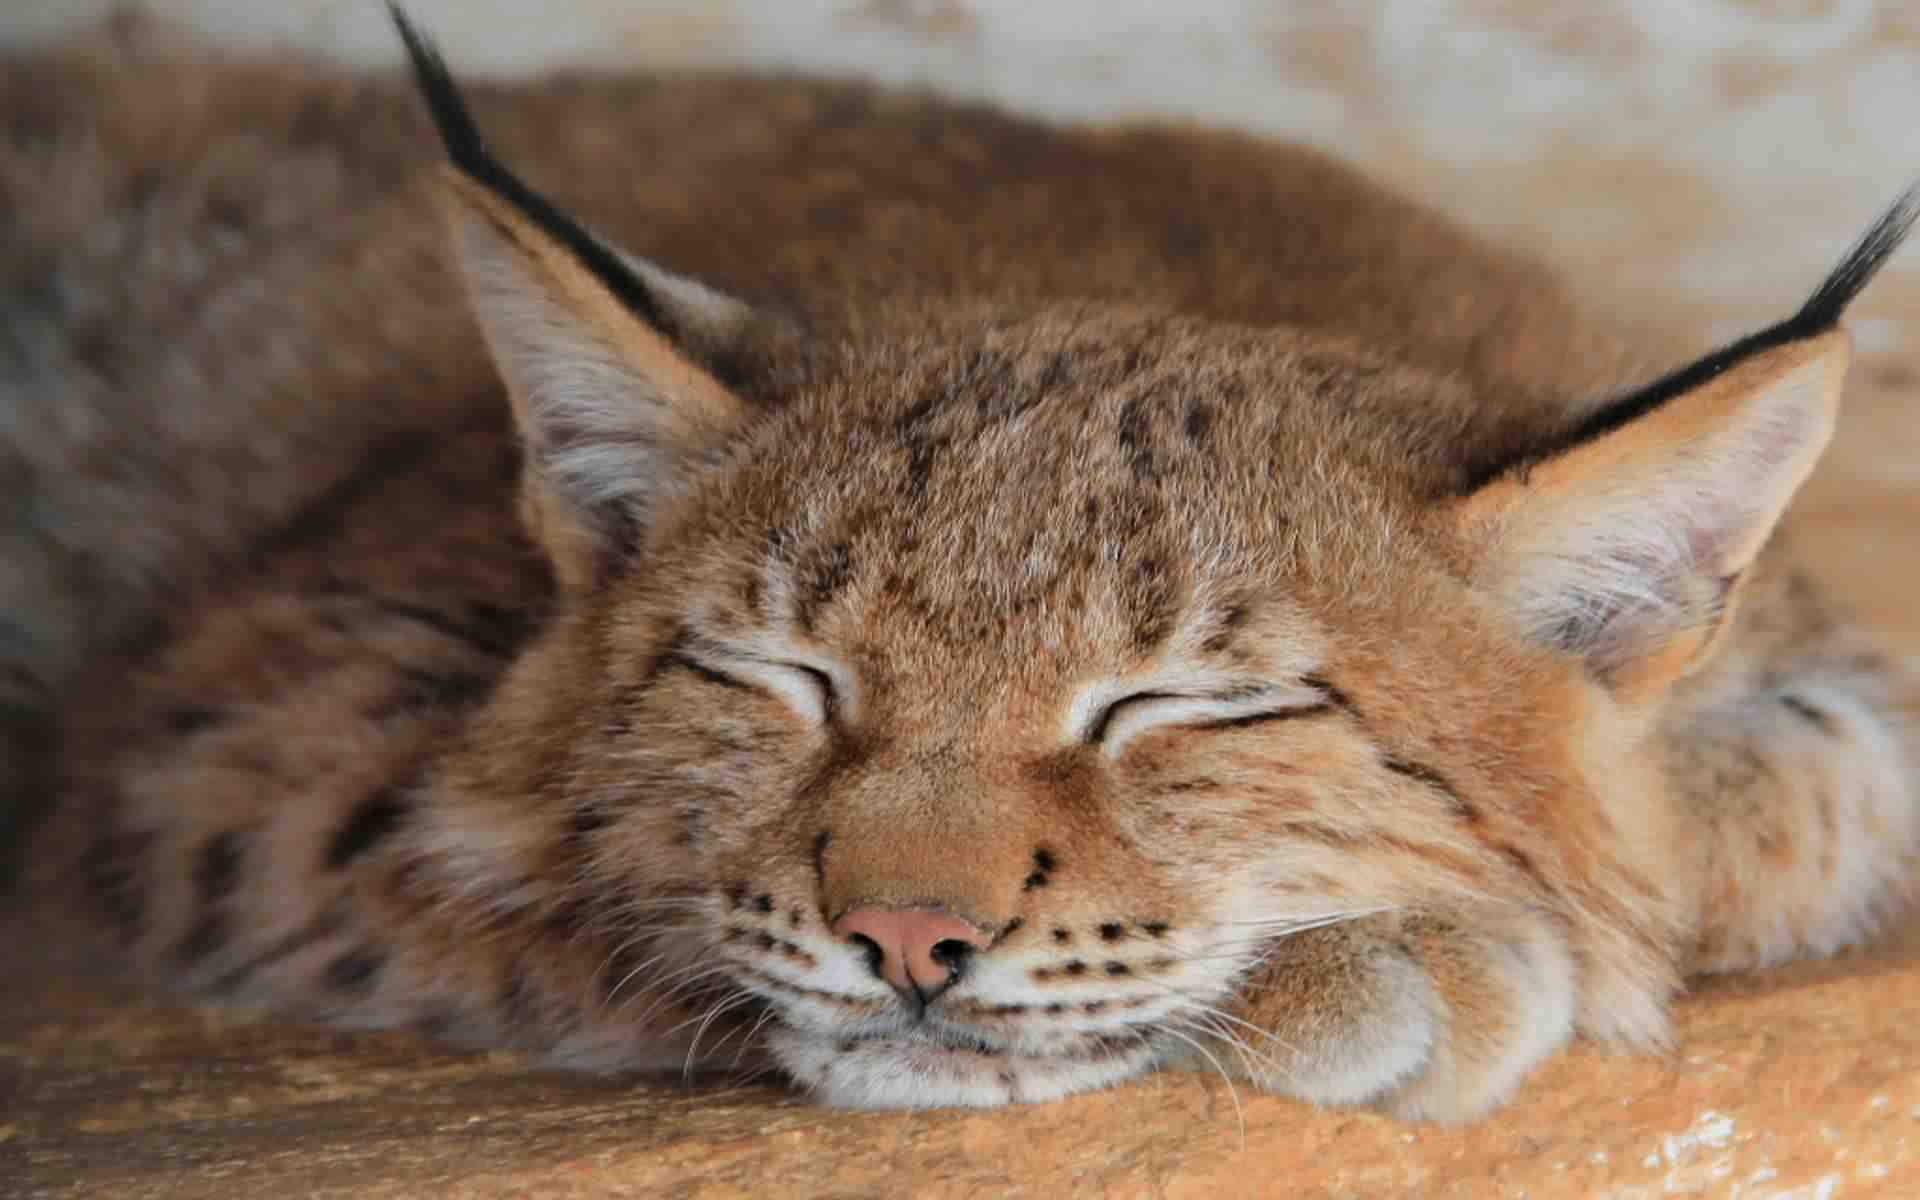 DOWNLOAD: lynx sleep predator face big cat free picture 2560 x 1600